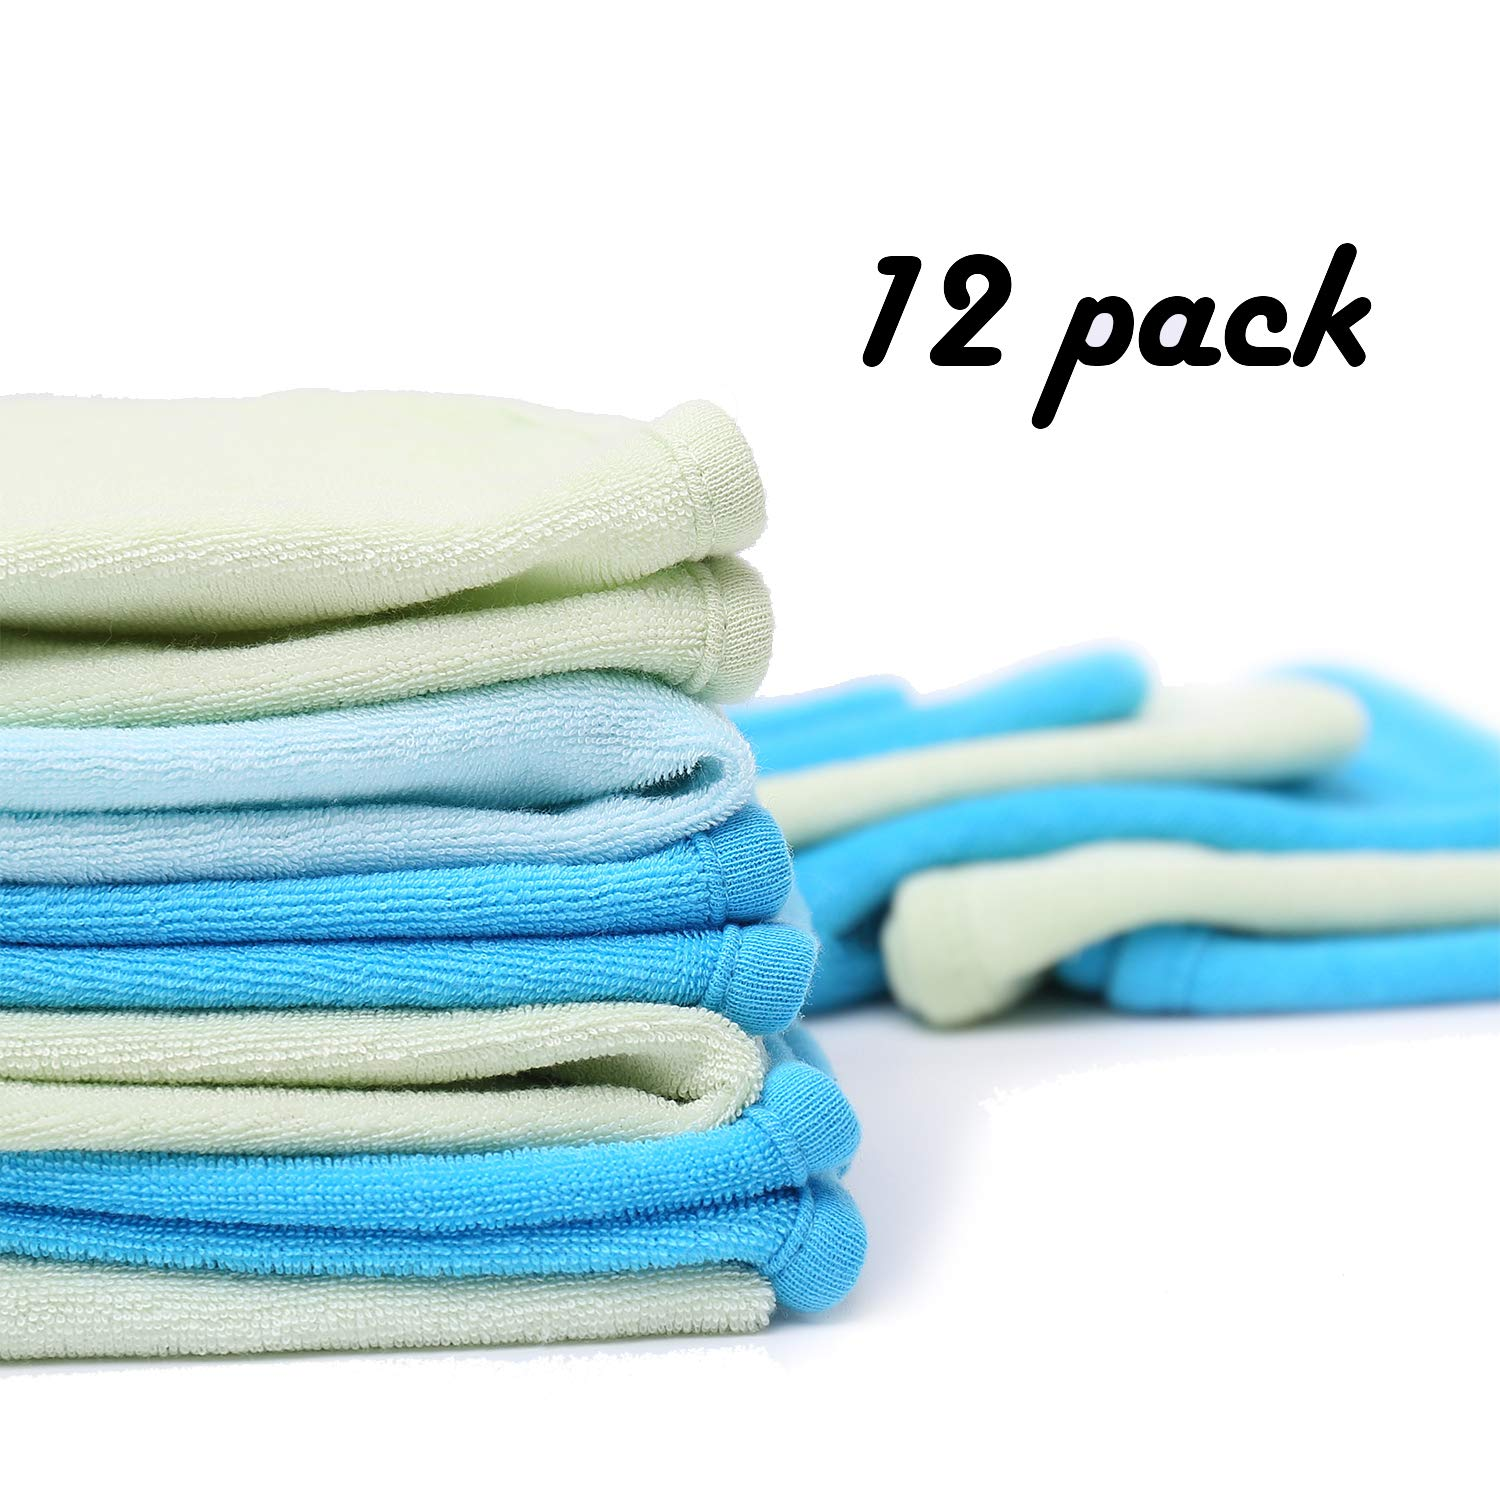 """Baby Towel Baby Washcloths Organic Cotton (12 Pack) Soft & Absorbent for Sensitive Skin 8.5""""x8.5"""" Wipes - Bath Towel and Newborn Registry Gift Danea Deco"""